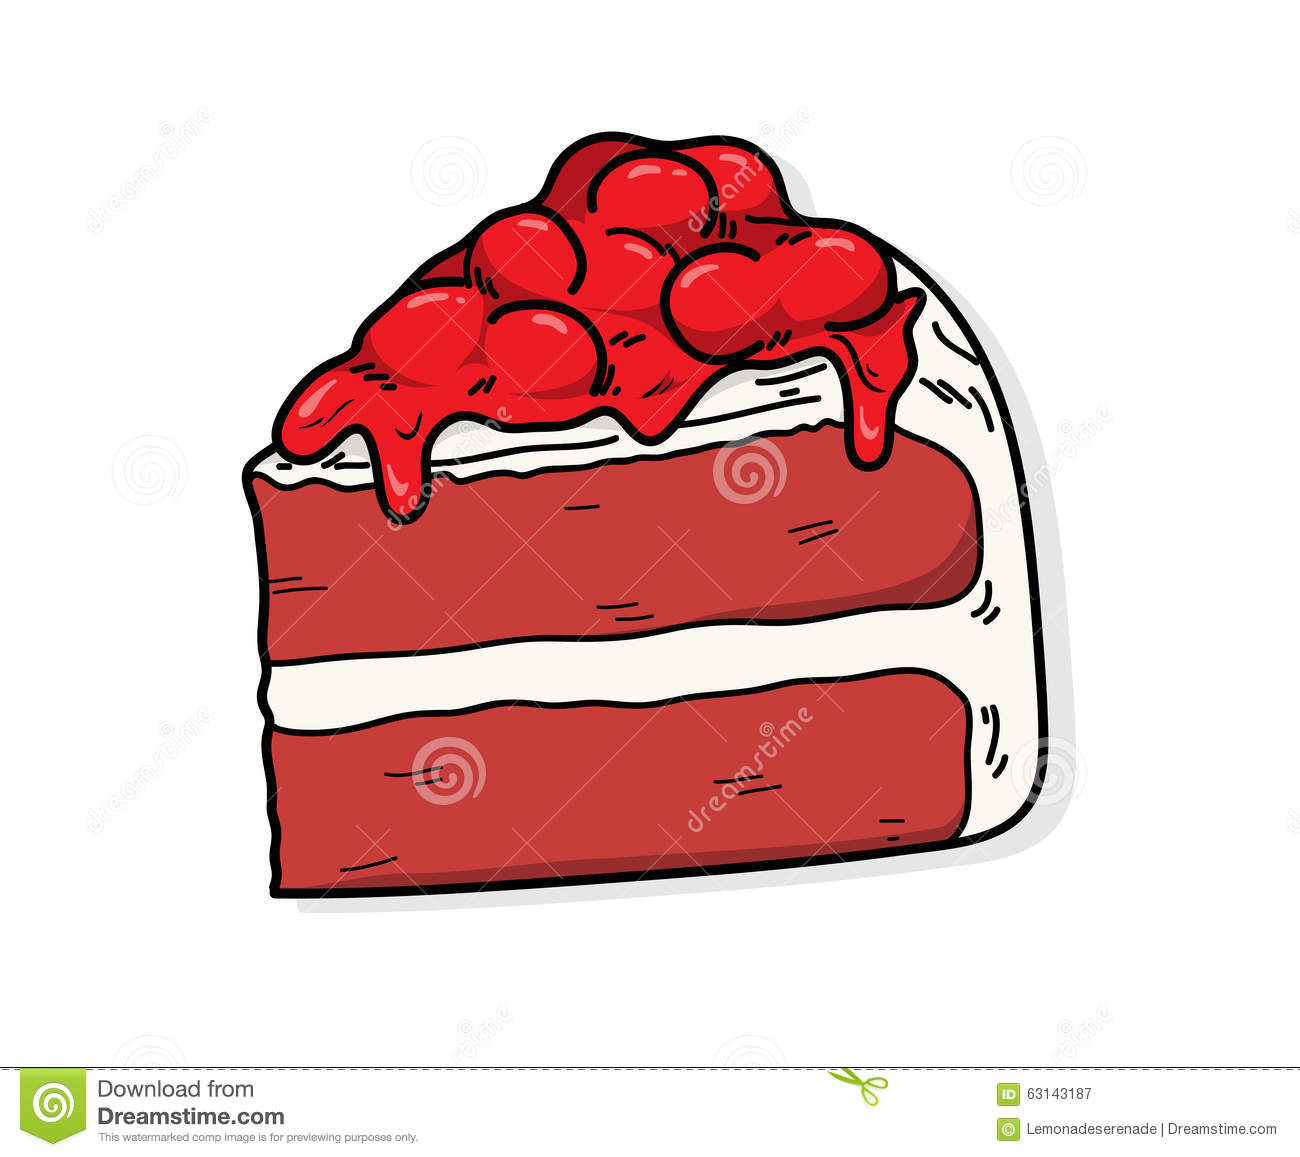 Red Cake Clipart : Red Velvet Stock Vector - Image: 63143187